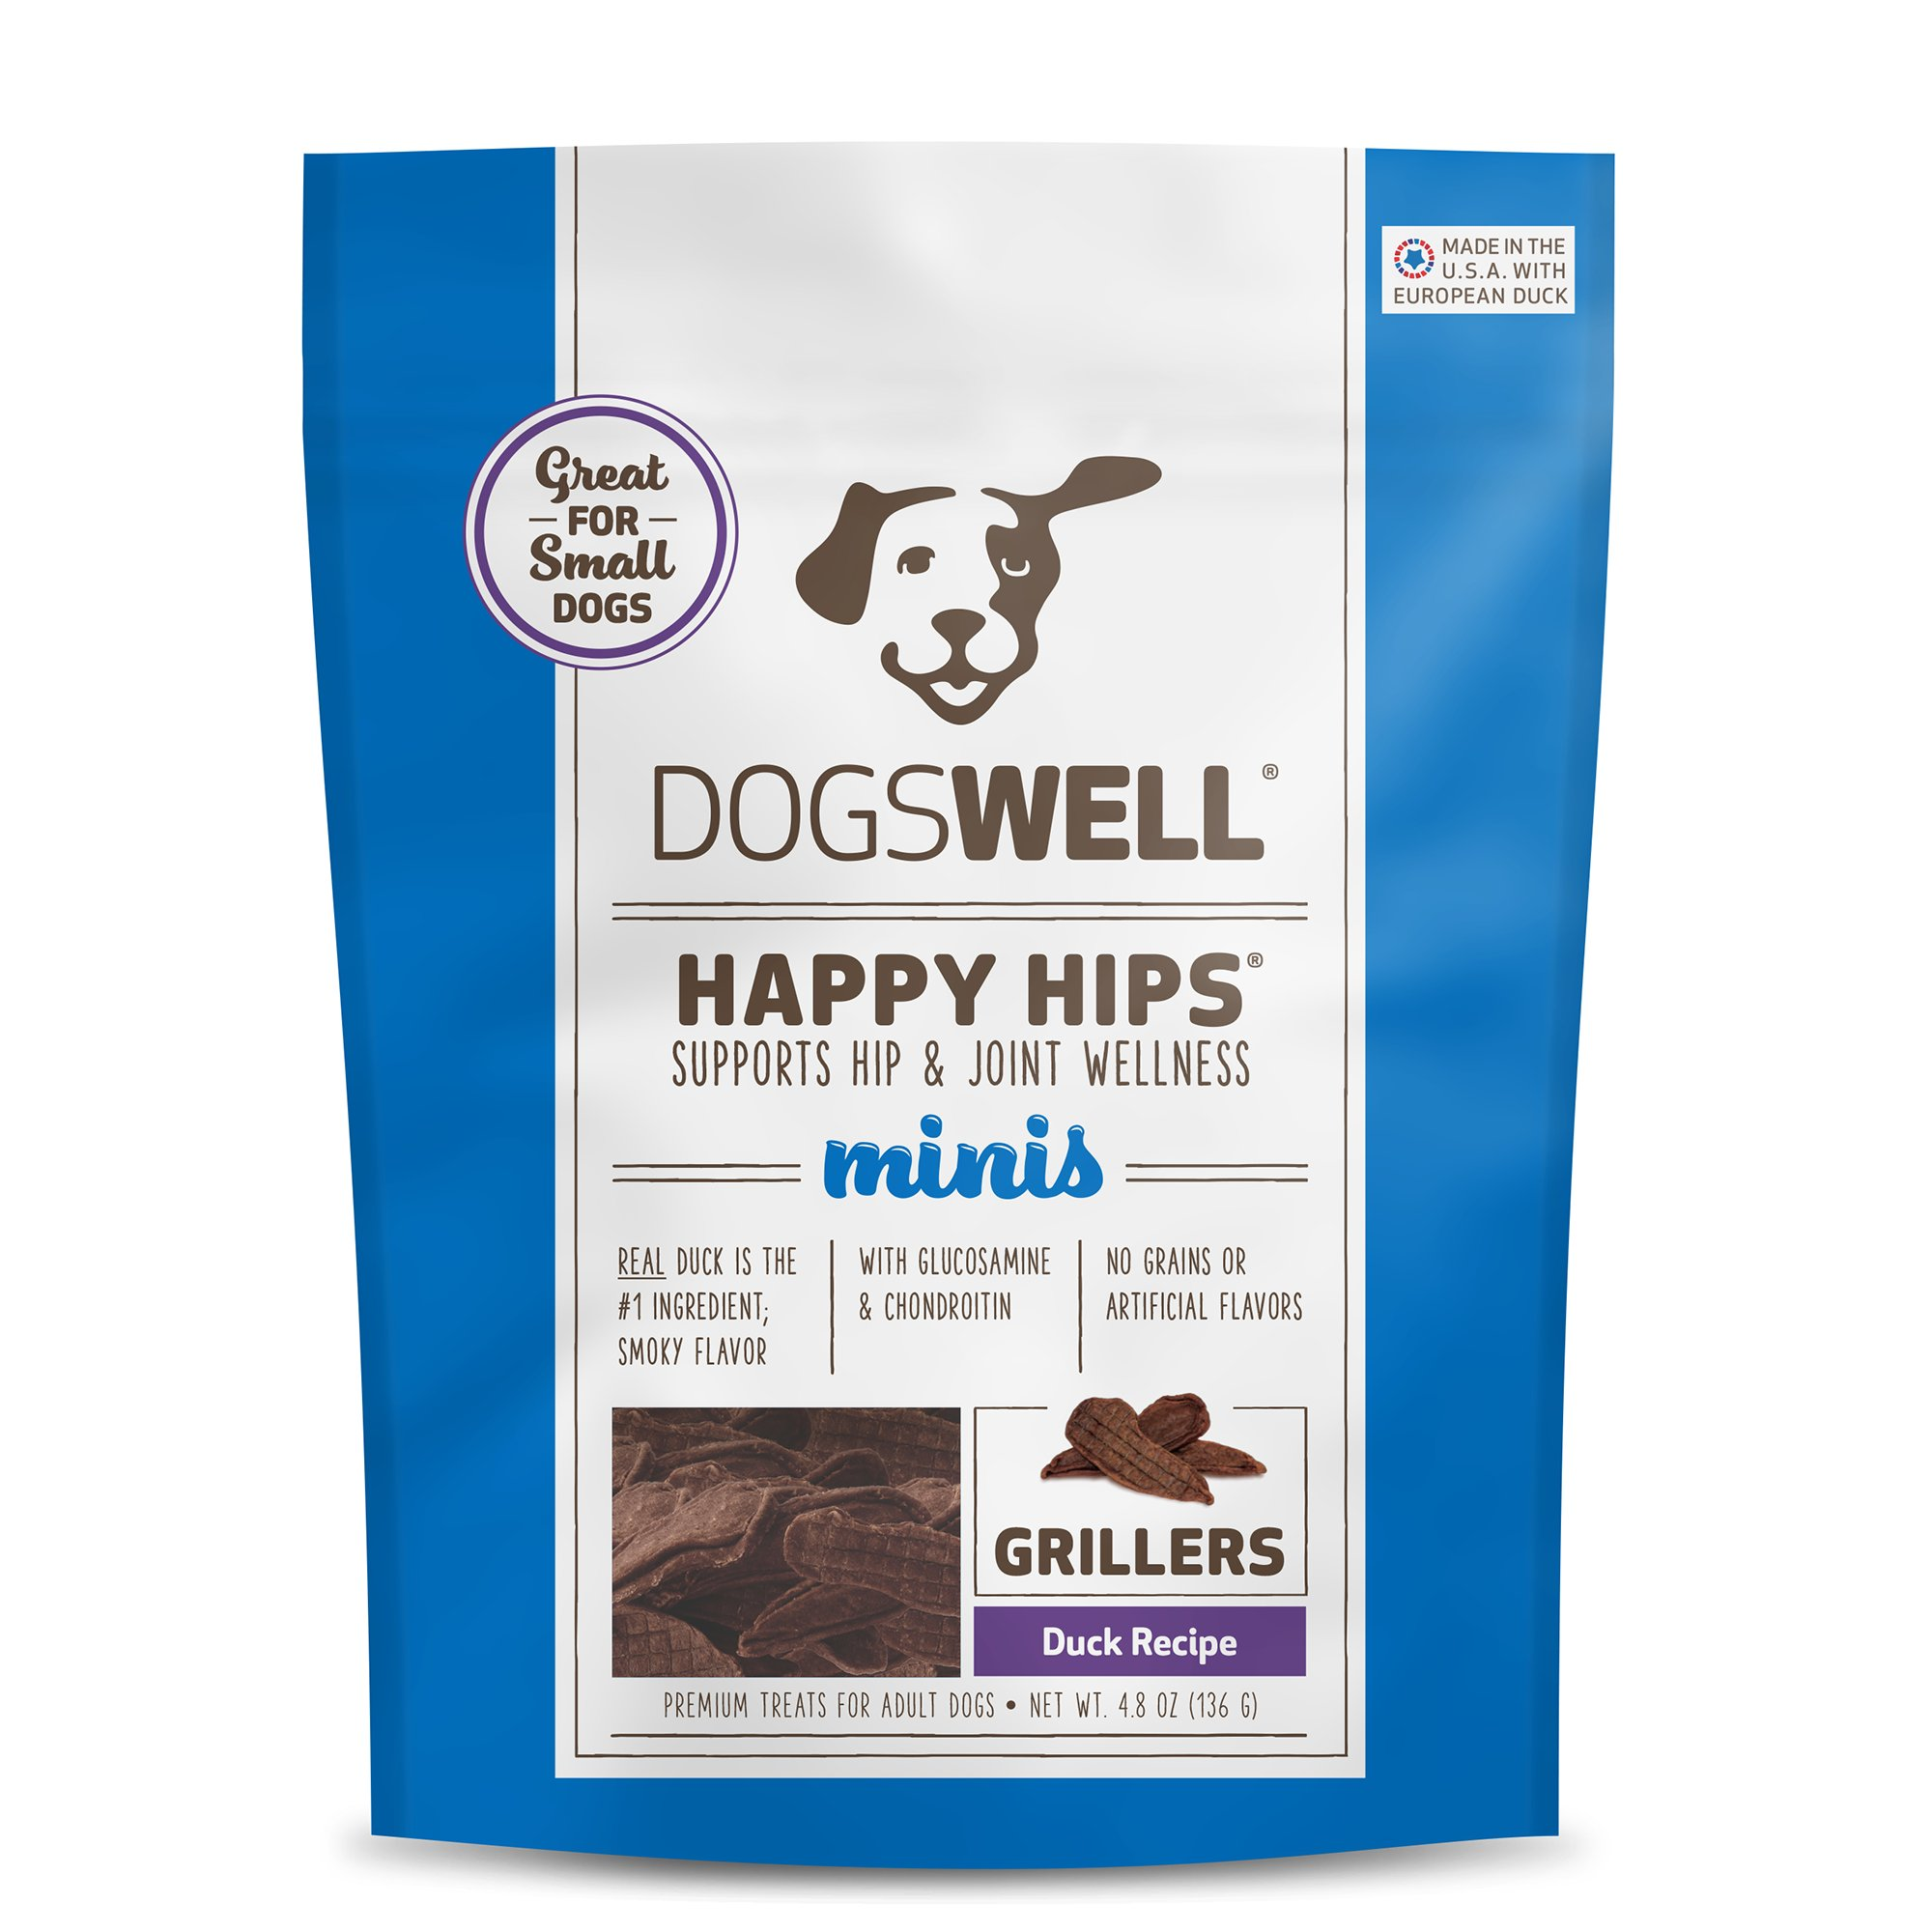 Dogswell Happy Hips Minis Duck Grillers Dog Treats